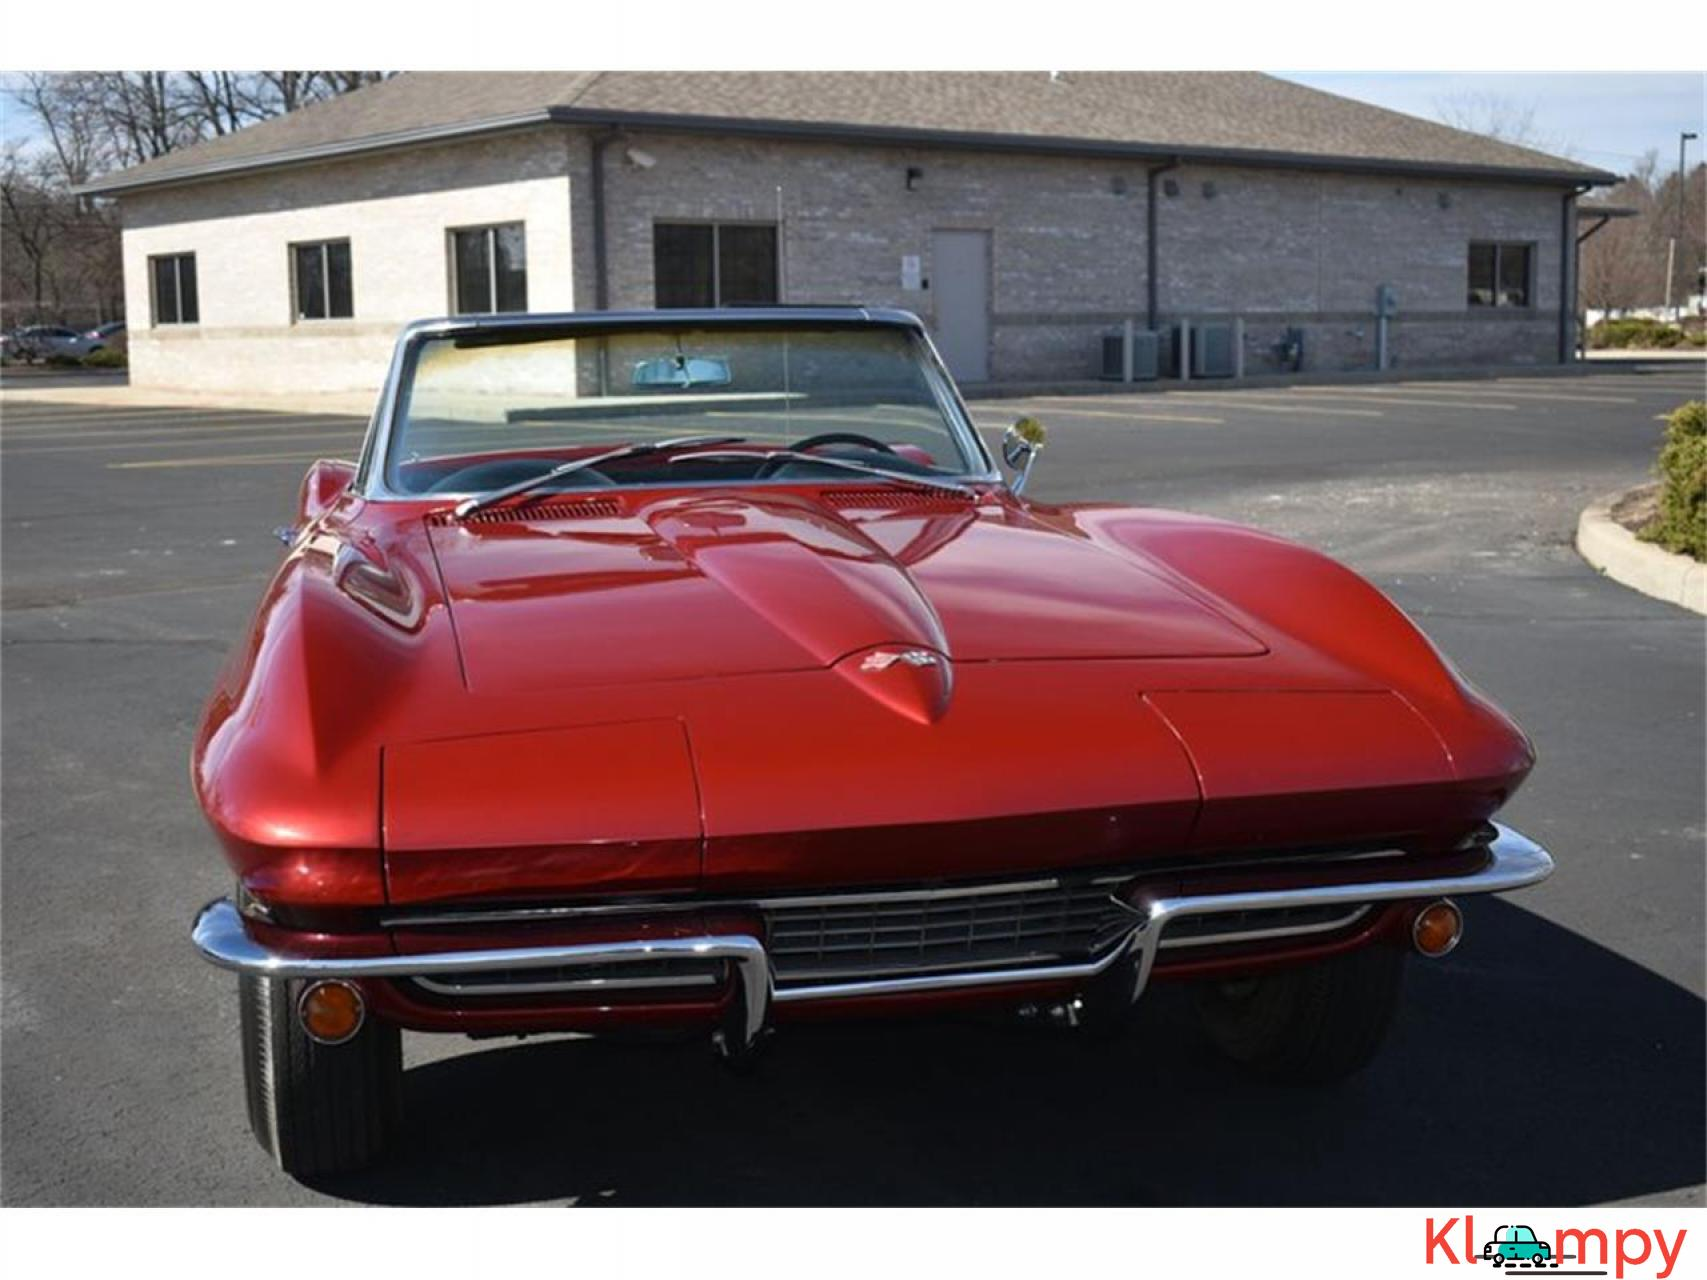 1967 Chevrolet Corvette 350HP 327 Cu In V8 - 19/20